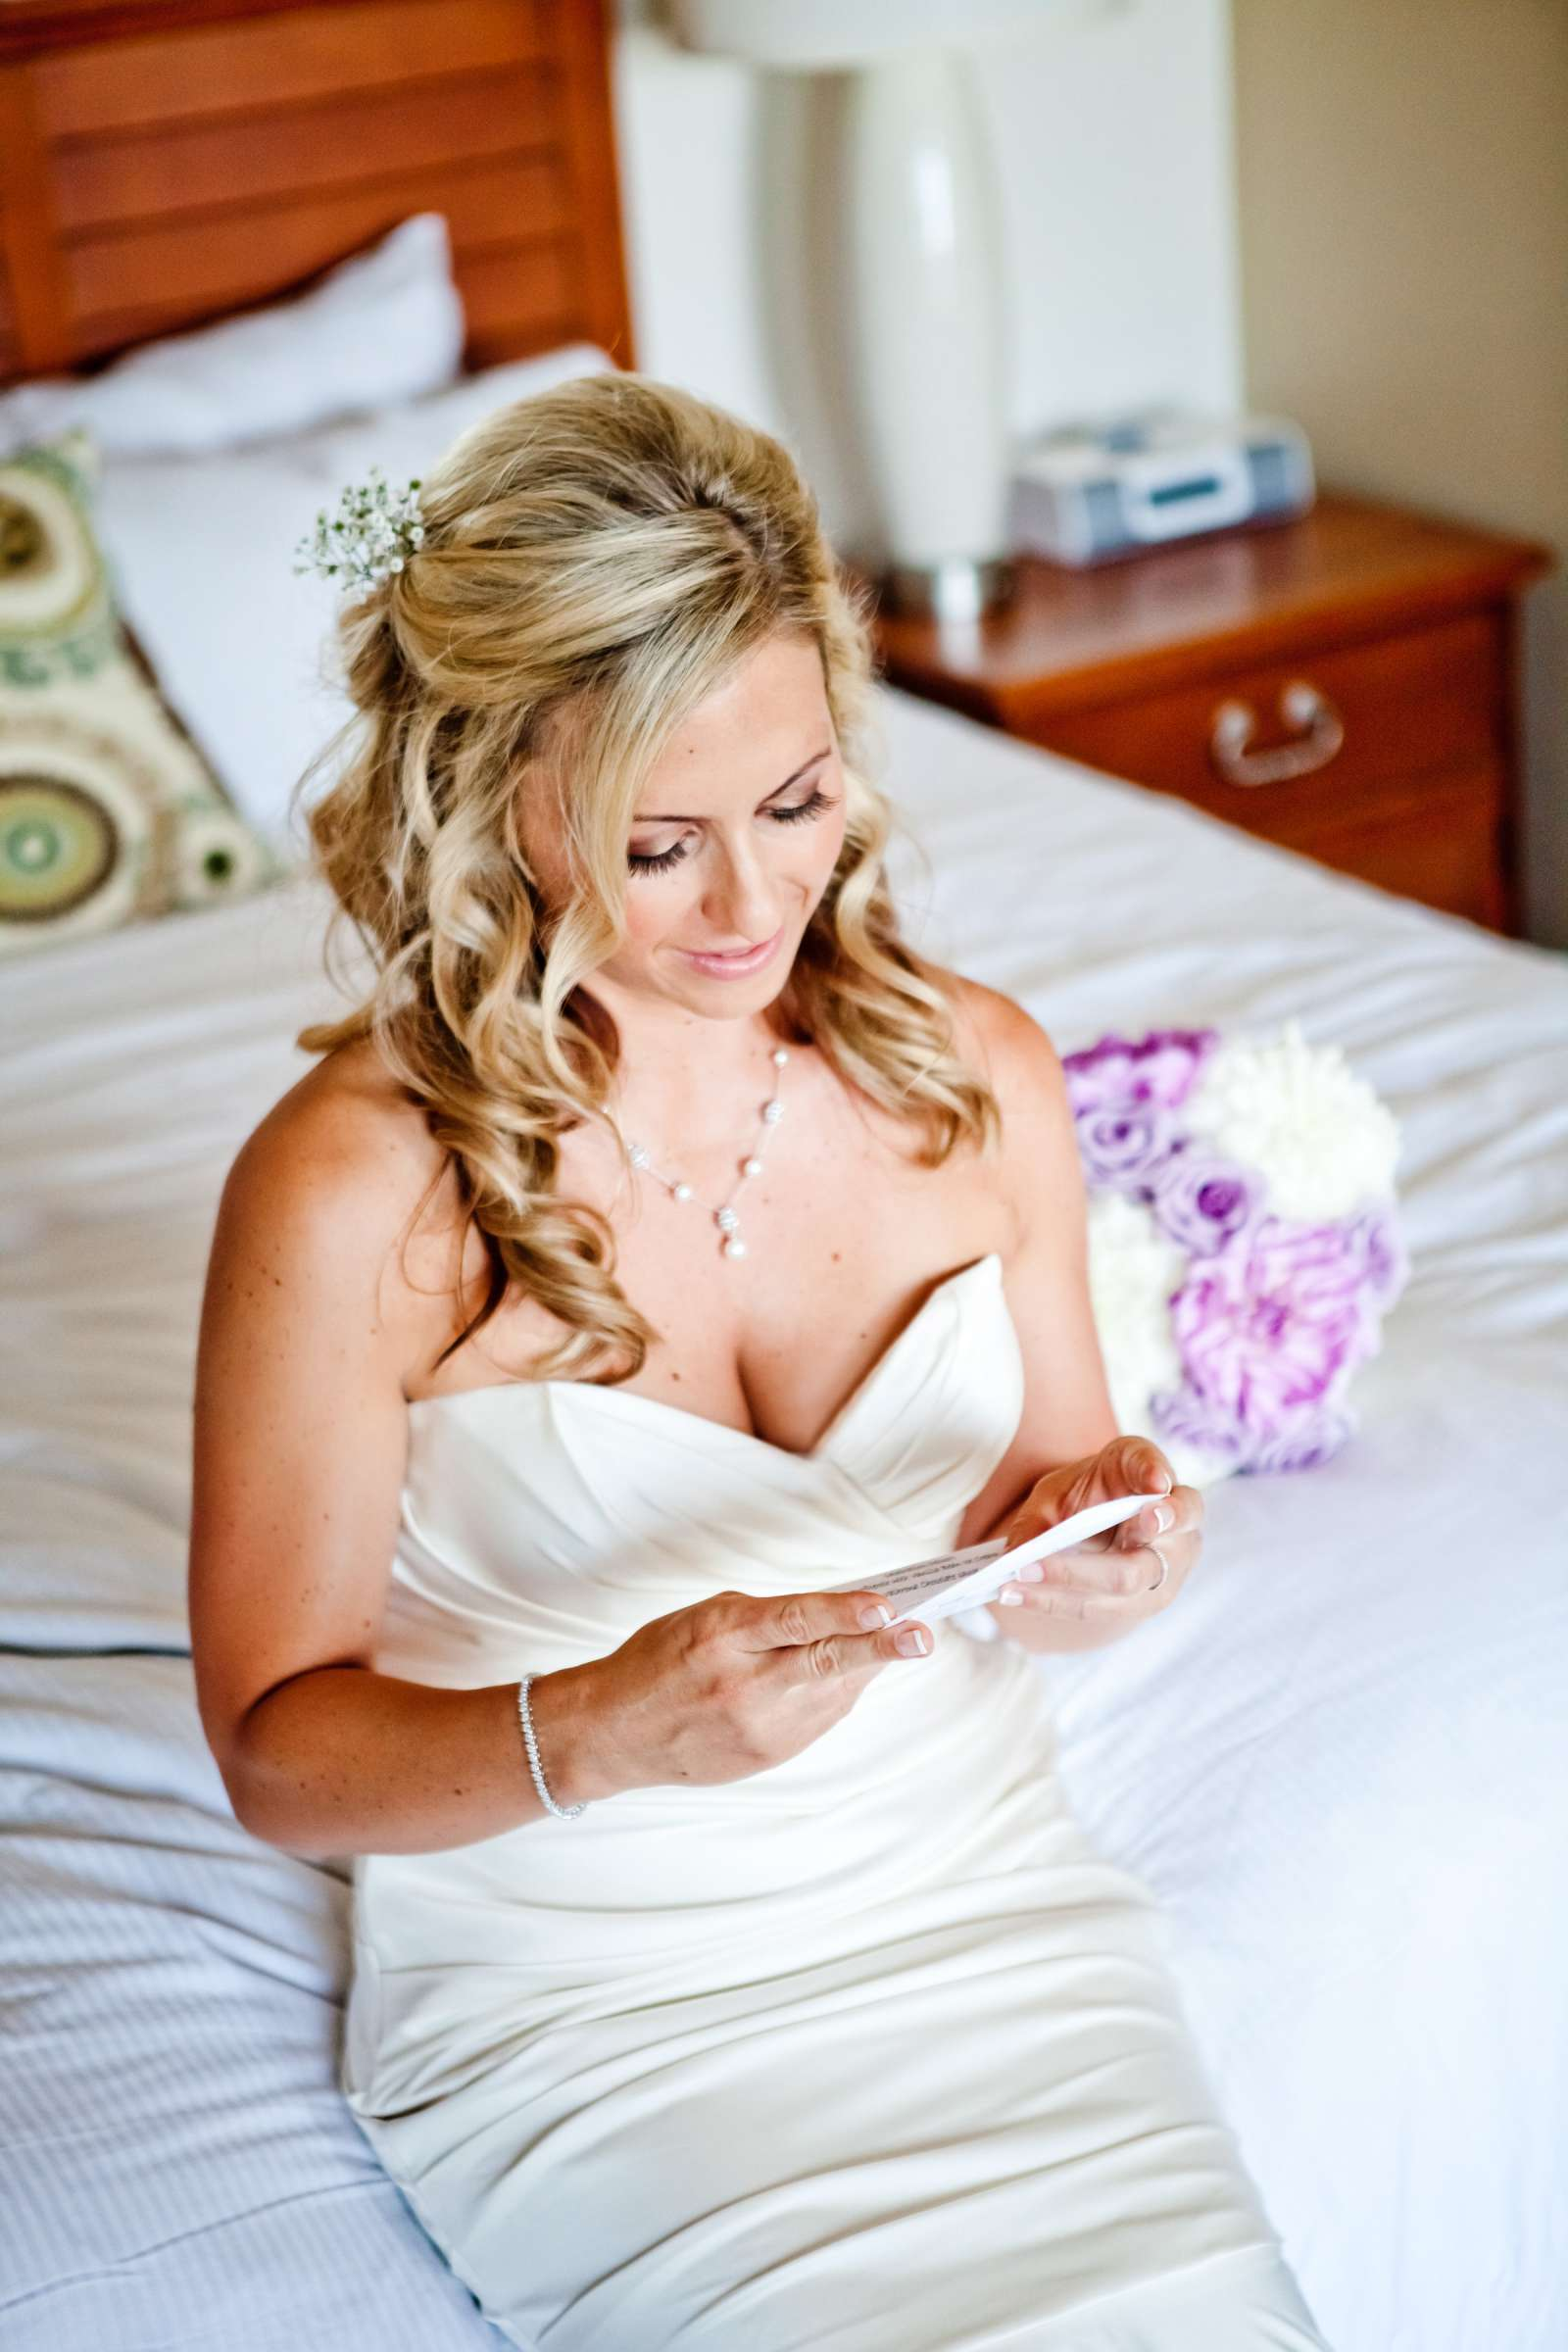 La Jolla Shores Hotel Wedding coordinated by I Do Weddings, Stefanie and Craig Wedding Photo #373300 by True Photography